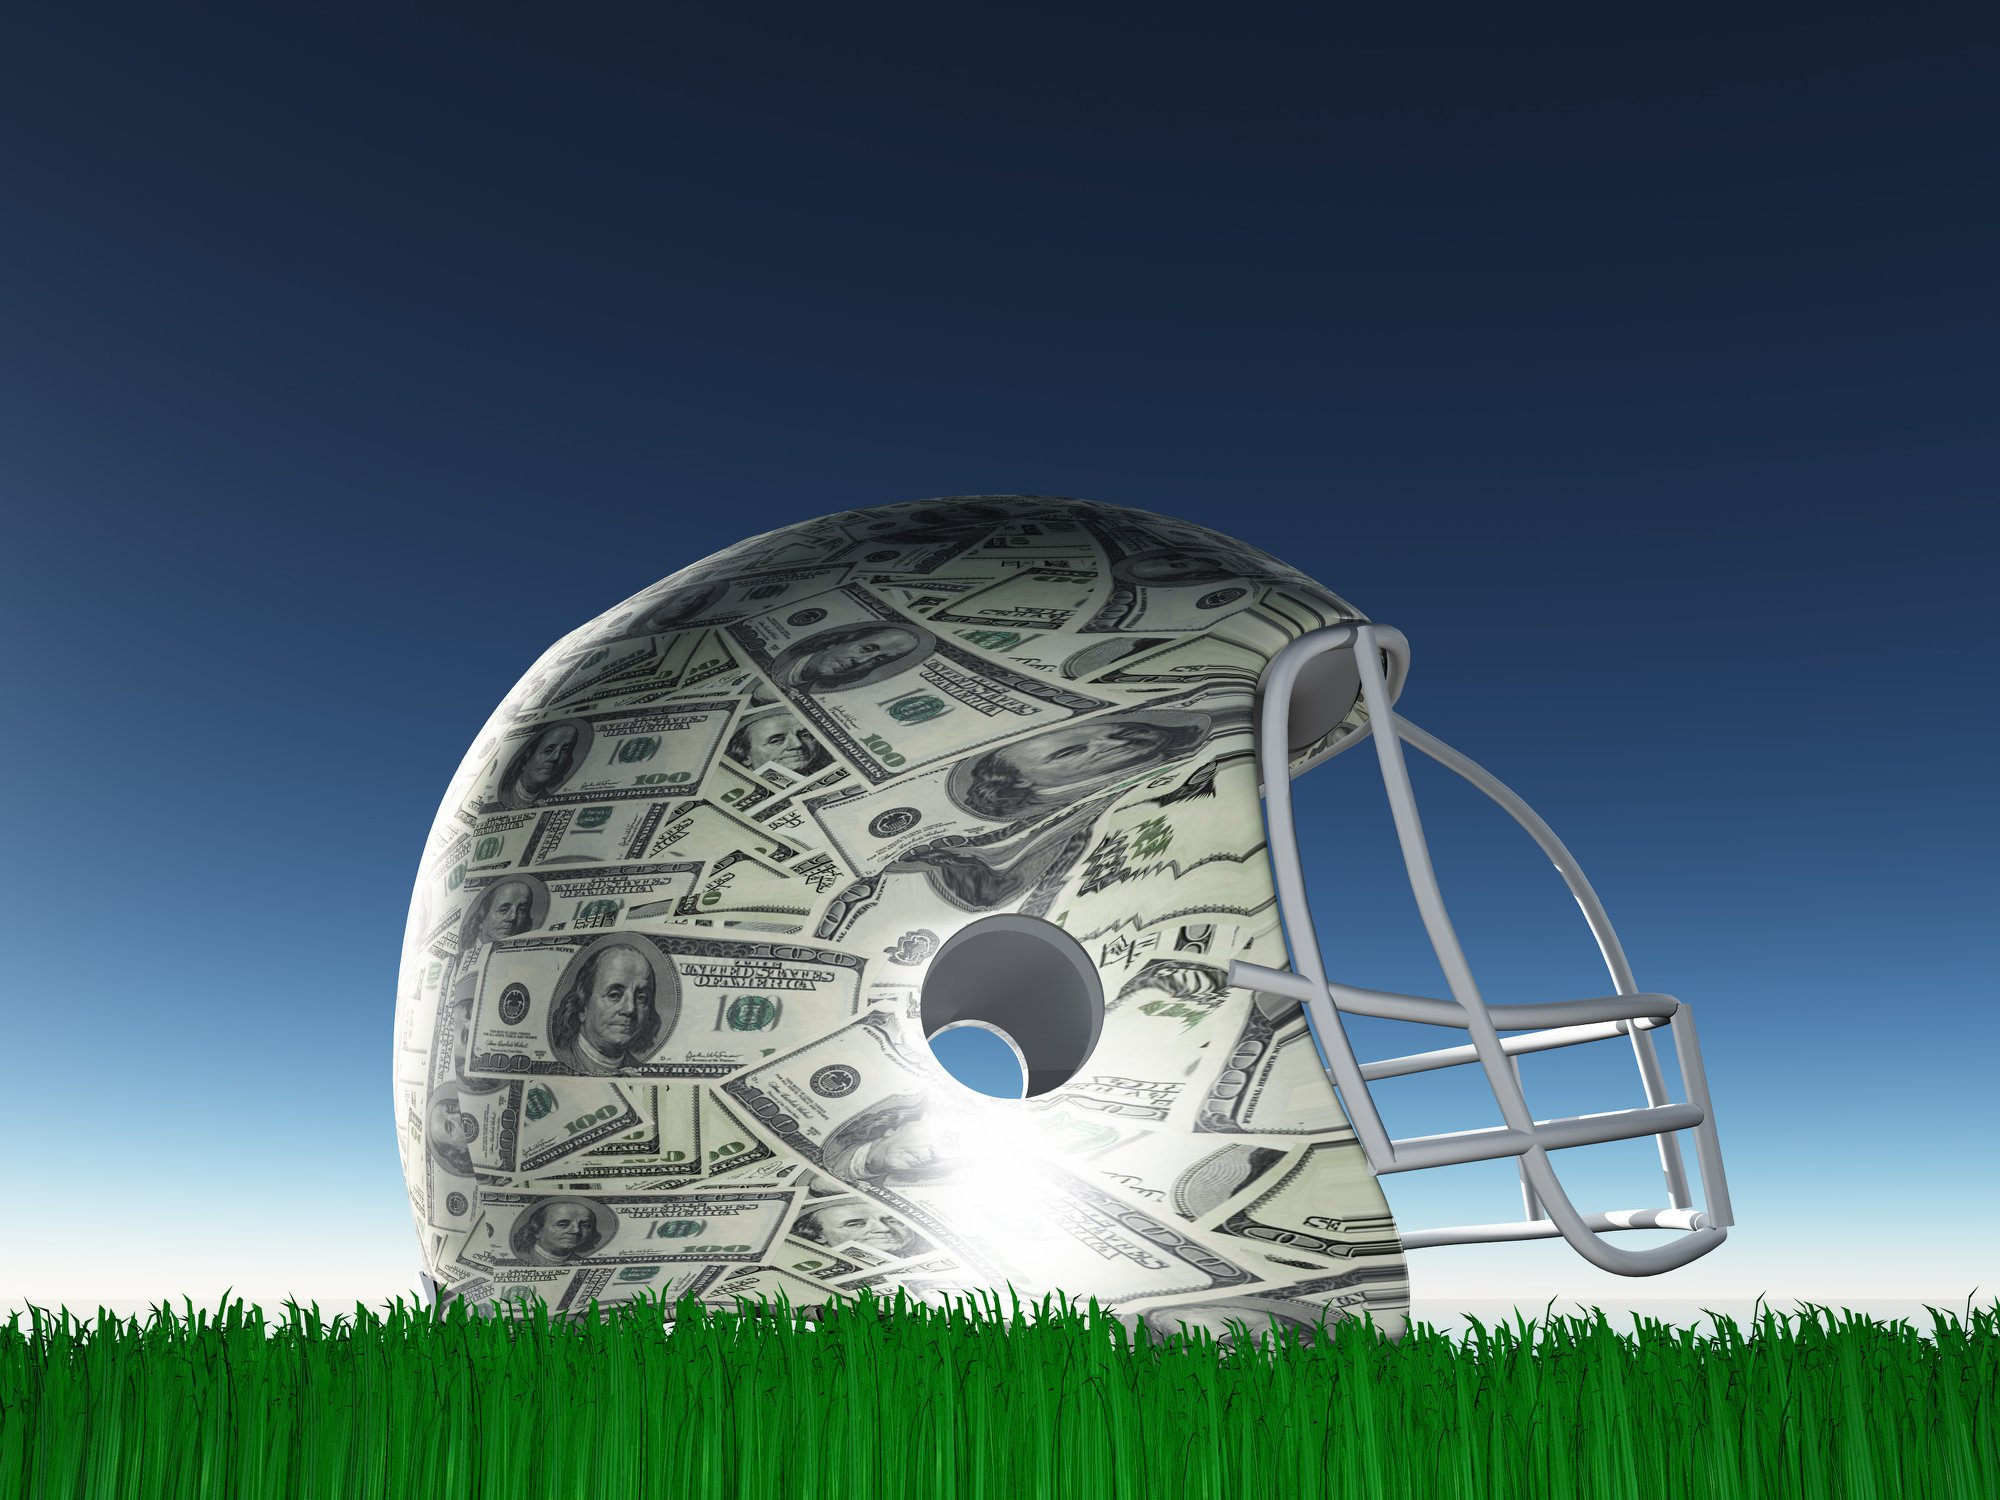 Image of helmet with 100 dollar bills